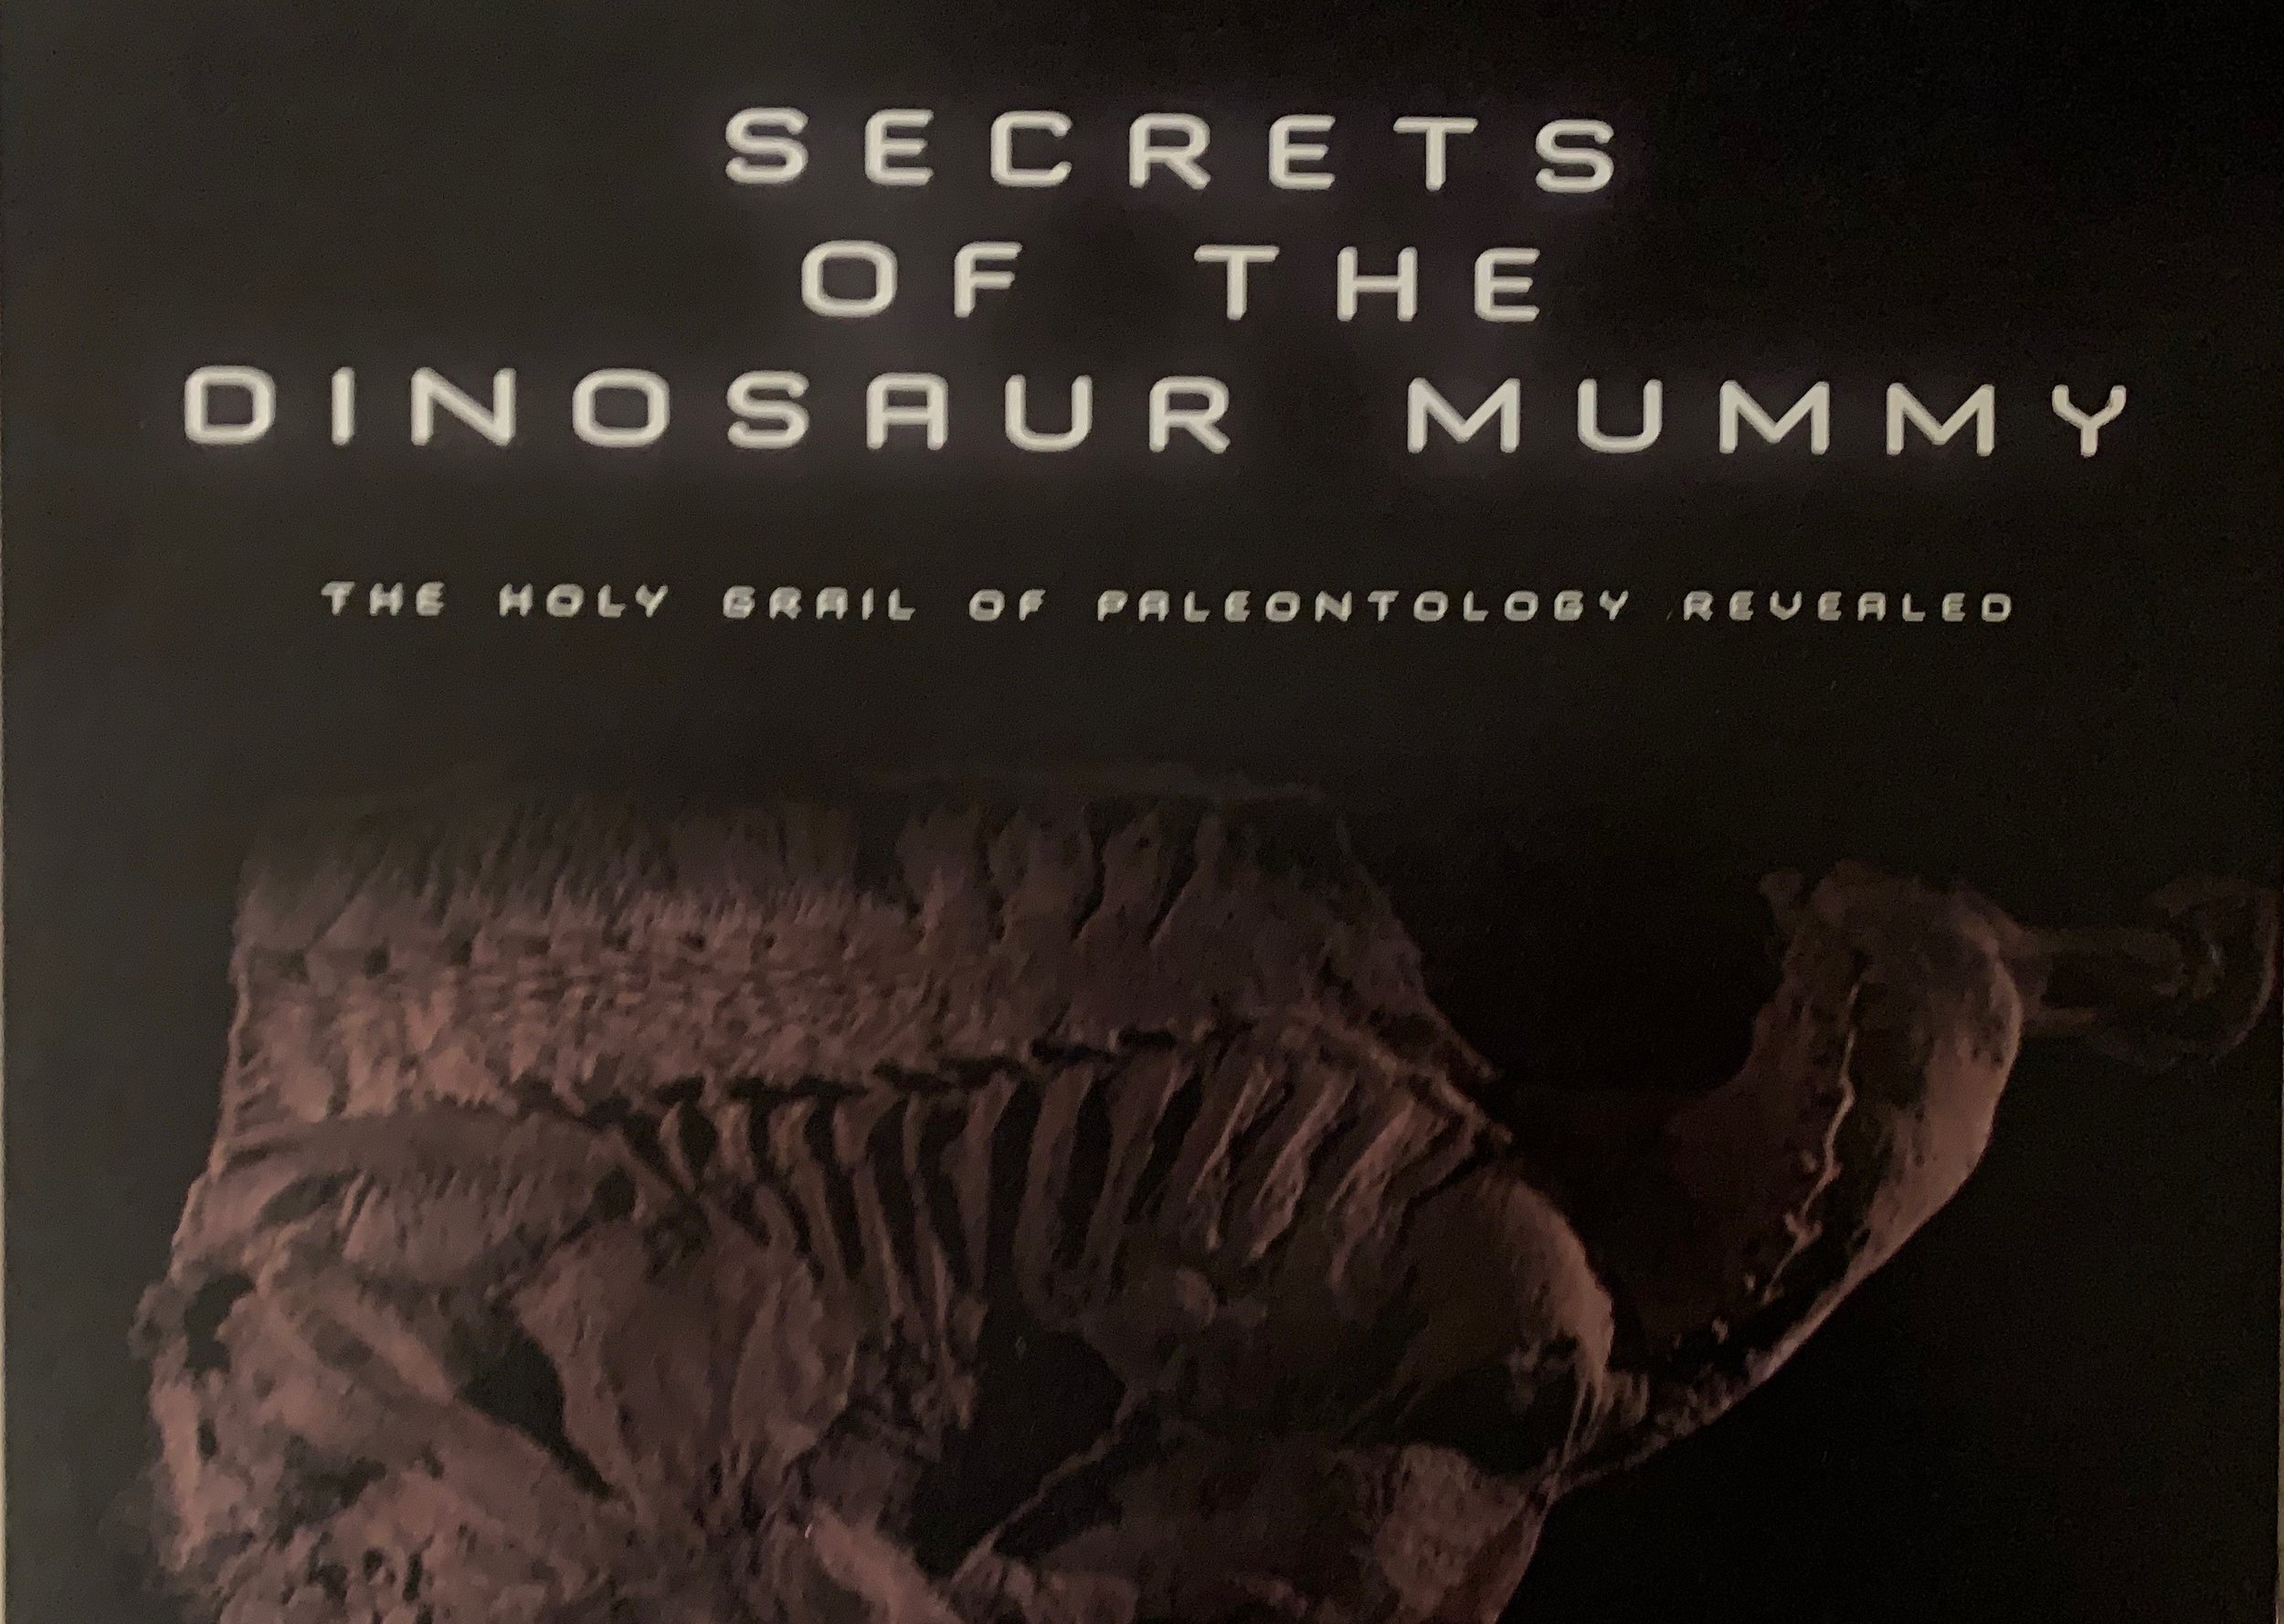 Secrets of the Dinosaur Mummy - A group of fossil hunters uncover not only the bones of a 77 million year old dinosaur, but its mummified and fossilized 'body'. After excavating the duckbill nicknamed 'Leonardo', scientists begin a battery of tests including a radiographic autopsy. Journey along with a team of paleontology experts as they make several astonishing discoveries including the creature's last meal and never-before-seen internal organs.DunnMedia with MidCanada Entertainment and Myth Merchant Films for Discovery Channel